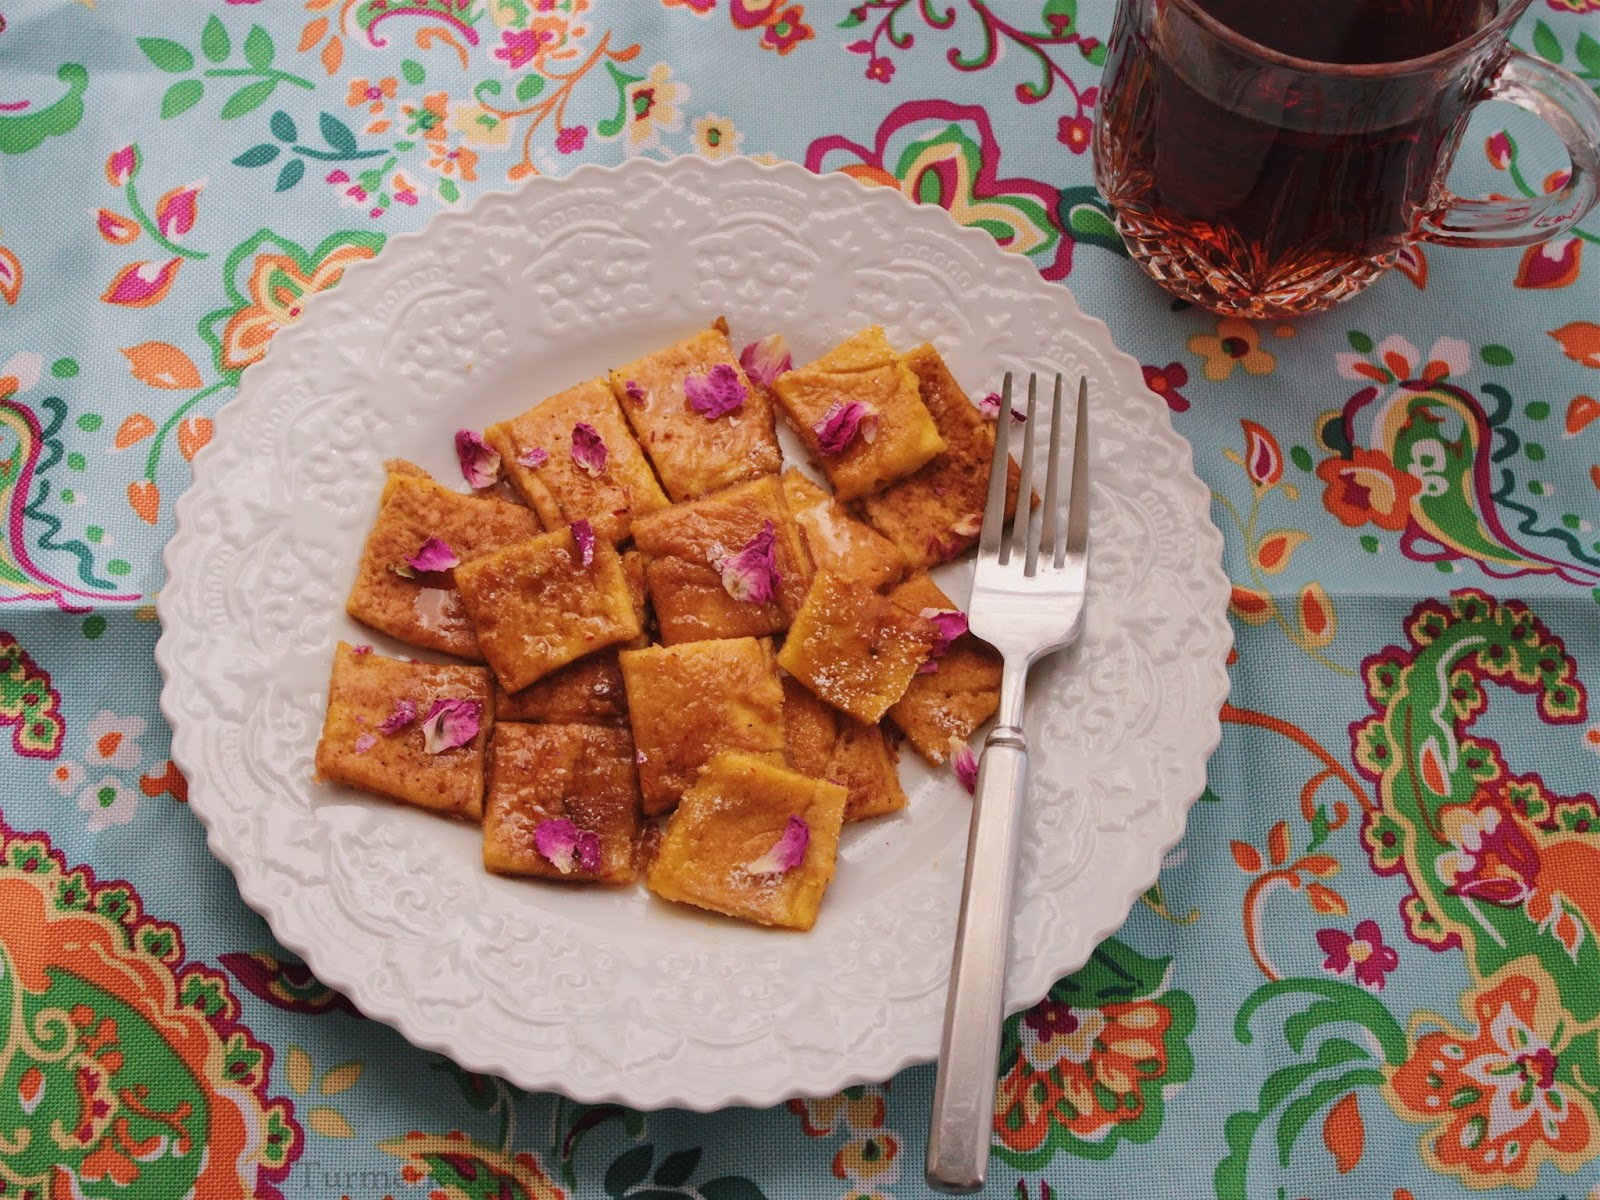 Turmeric saffron i recently received a copy of sofreh atameh a delightful cookbook written in 1881 by mirza ali akbar khan kashani the royal head chef to the forumfinder Choice Image